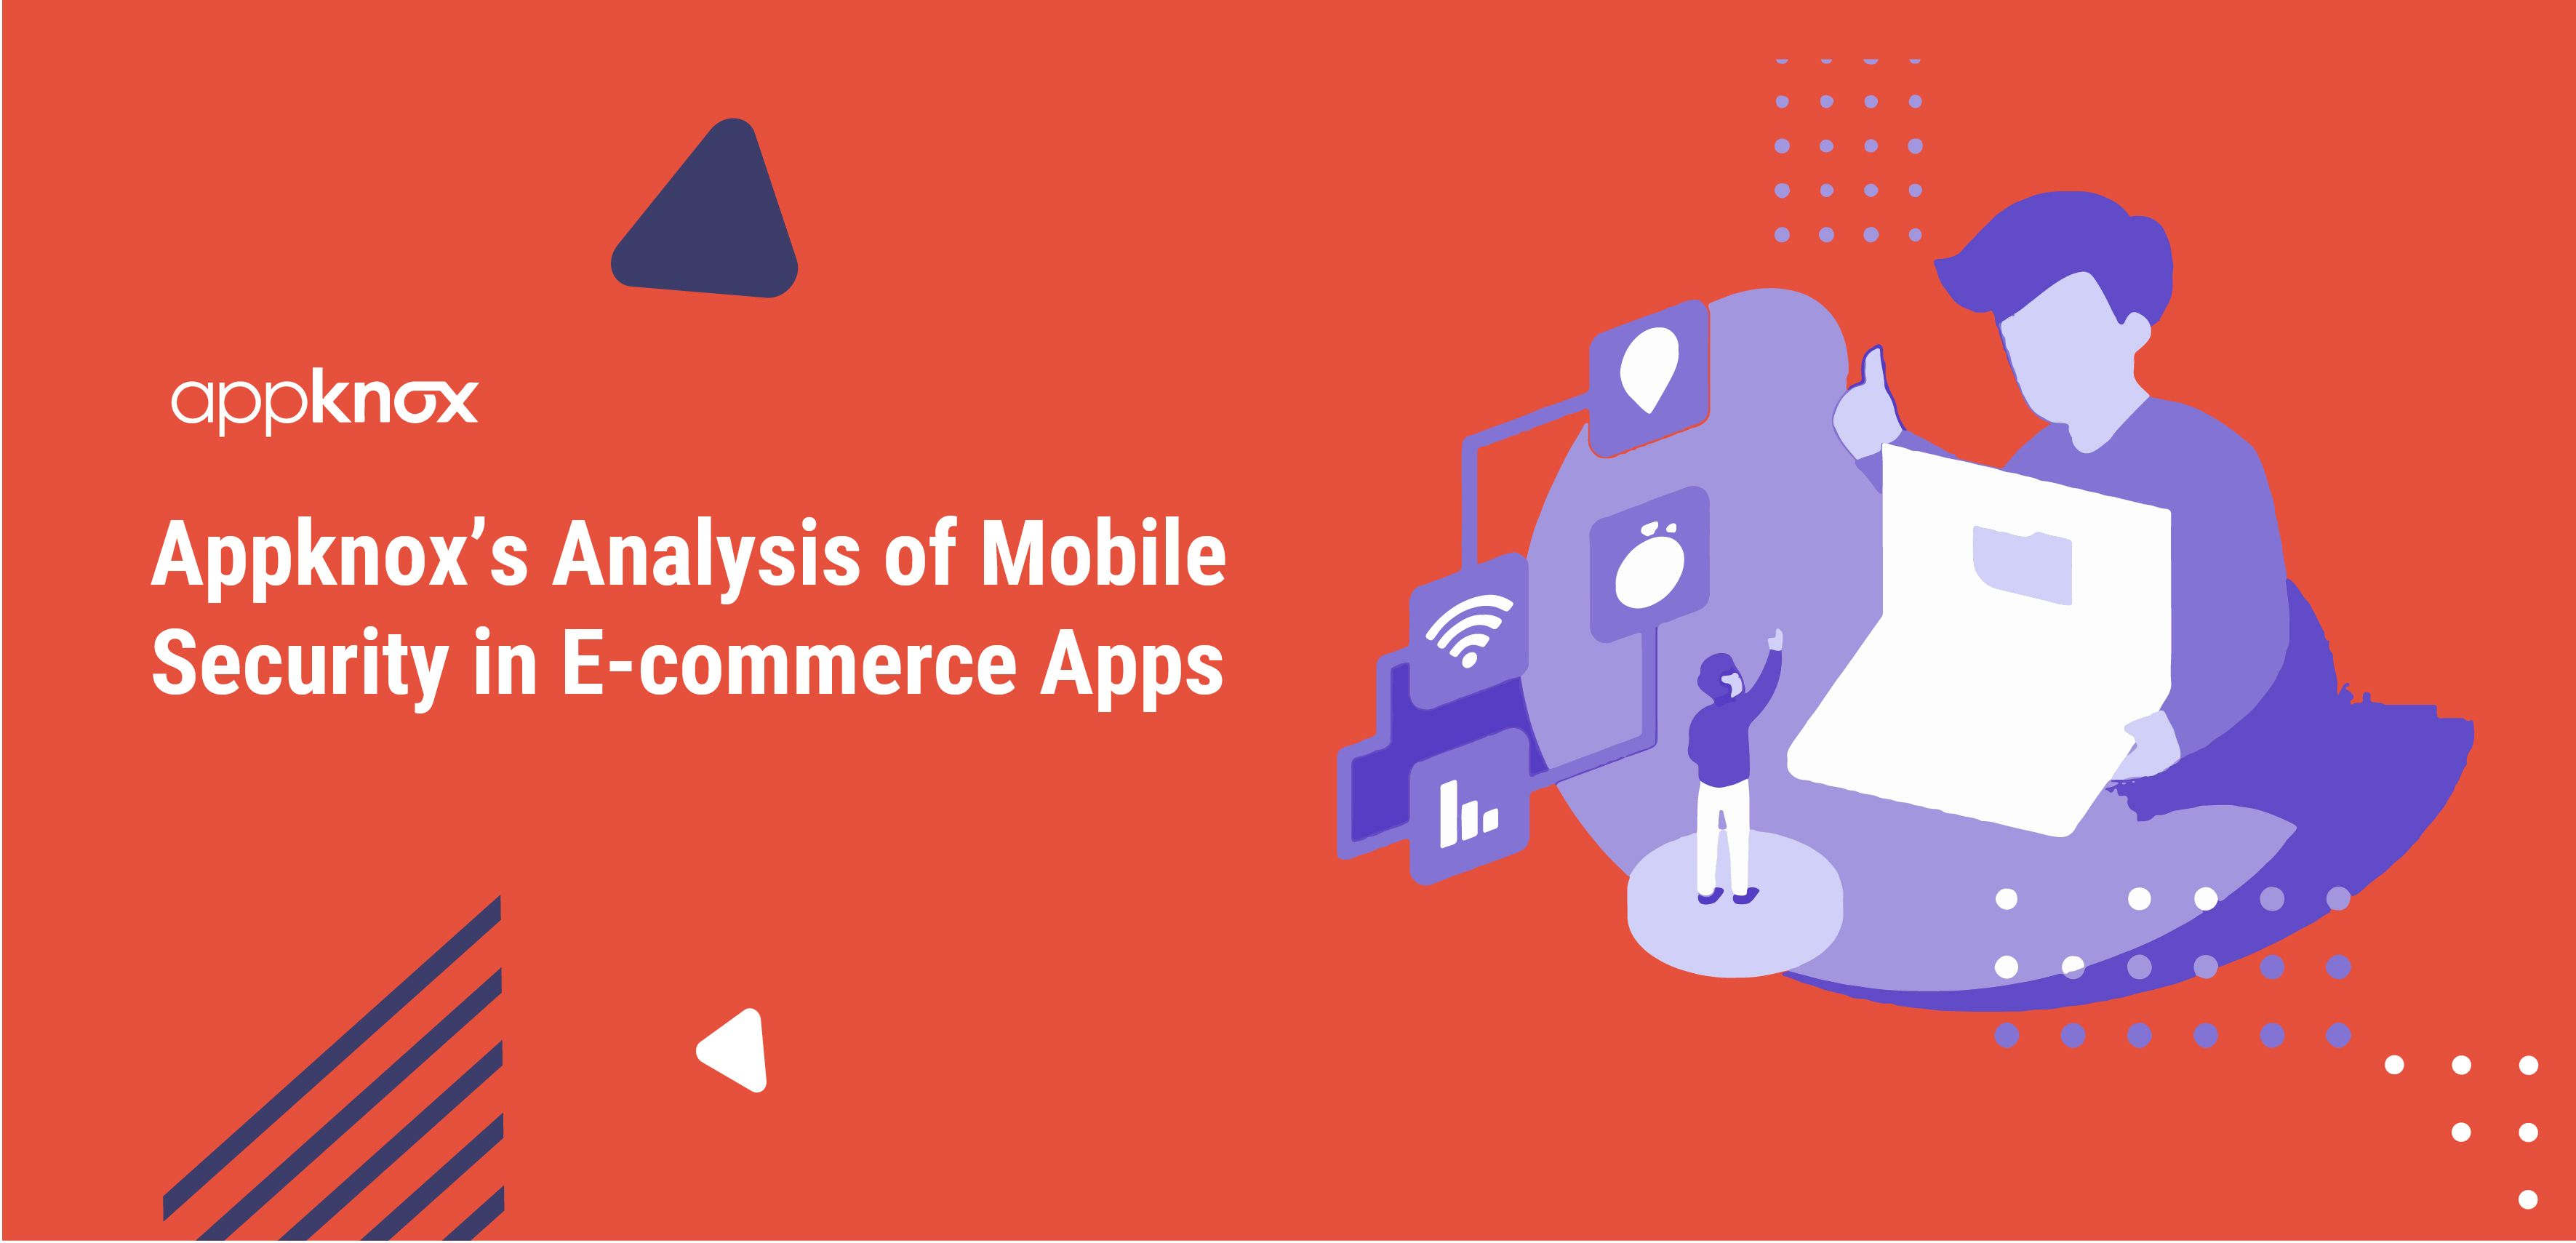 Global Analysis Of Mobile Security In E-commerce Apps